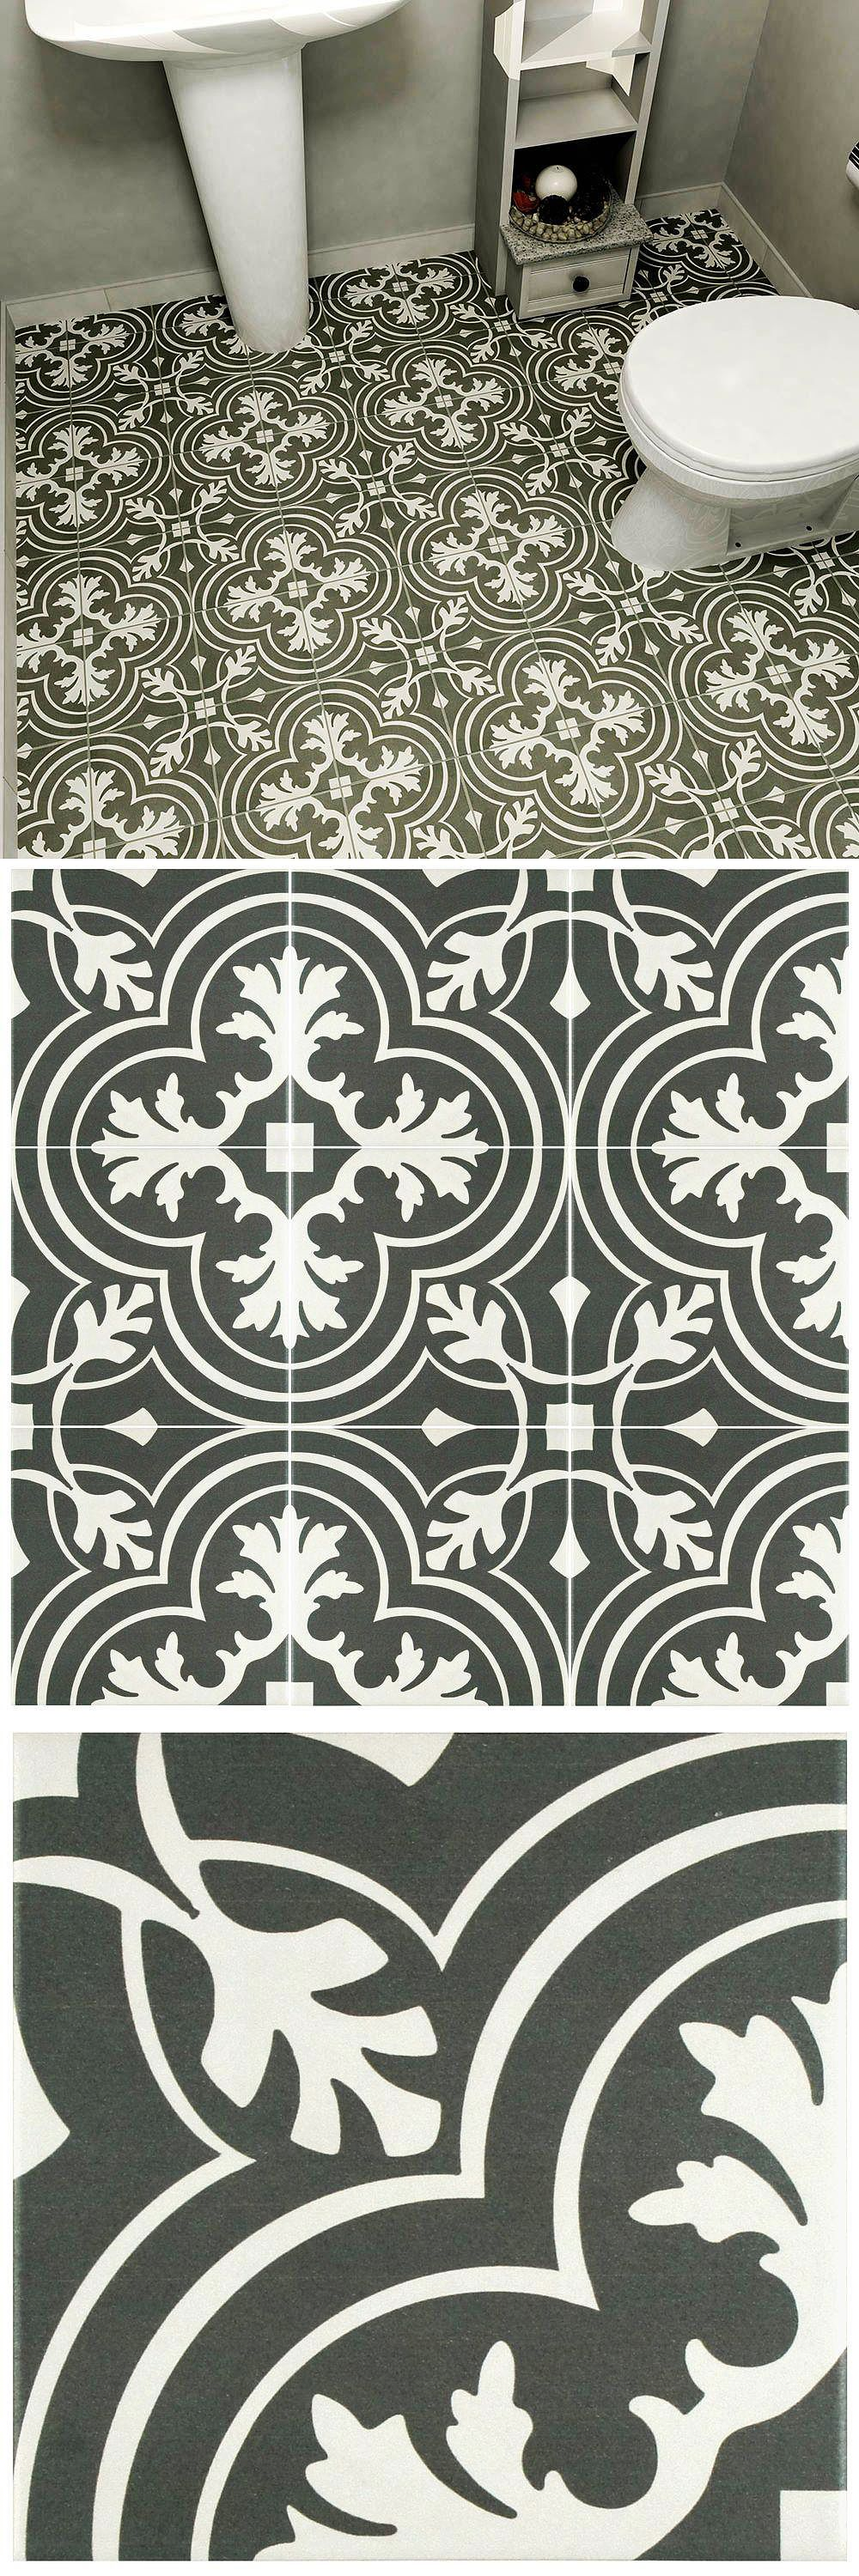 merola tile twenties classic ceramic floor and wall tile. Black Bedroom Furniture Sets. Home Design Ideas